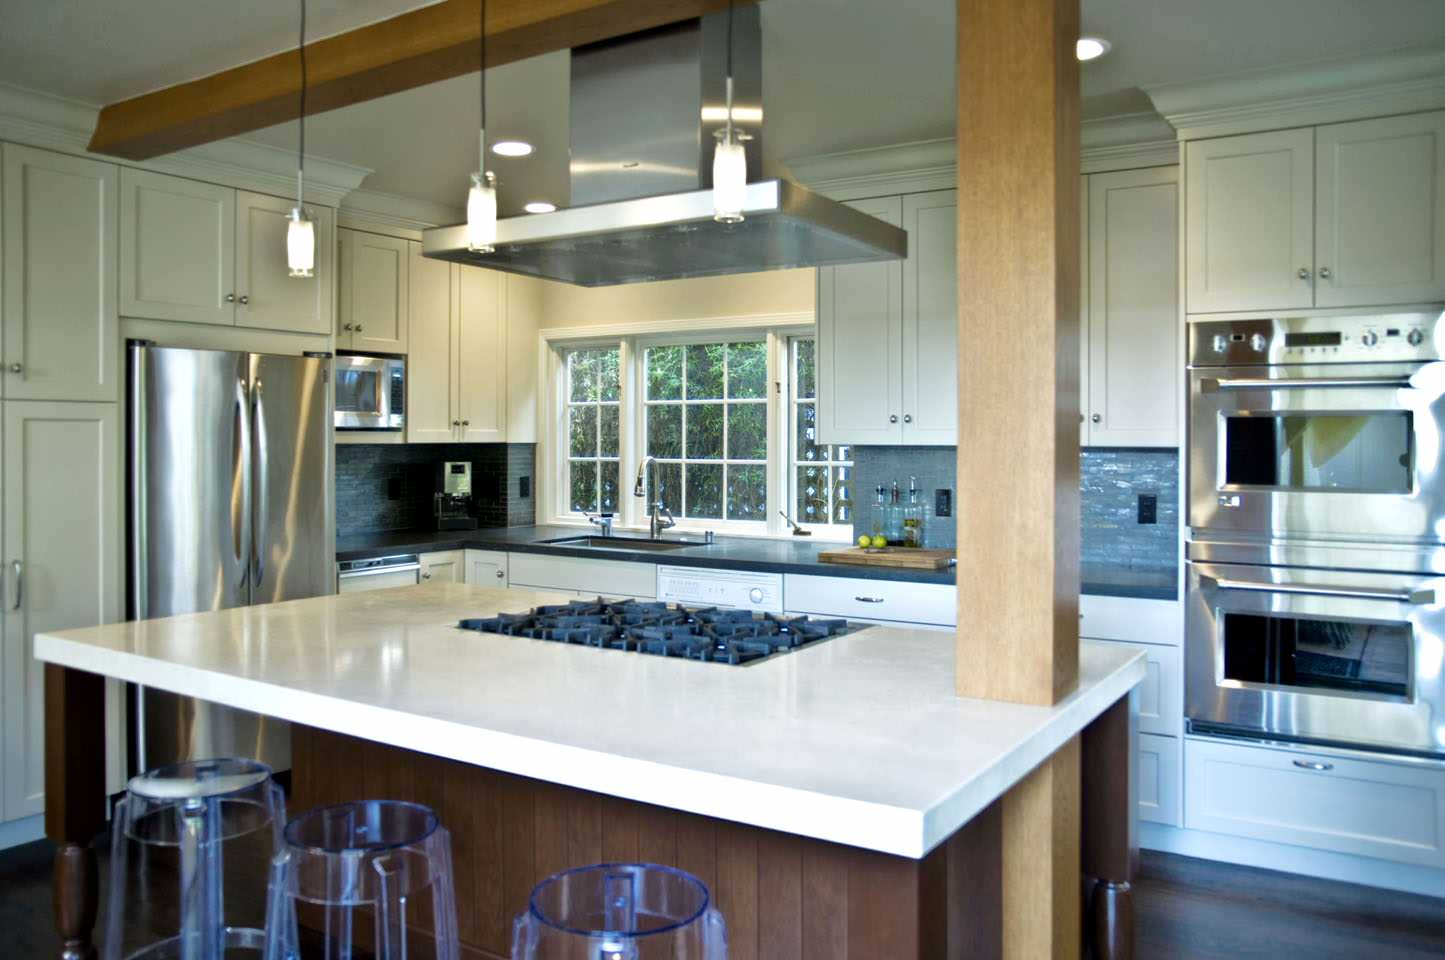 Kitchen with island cooktop   Contemporary   Kitchen   San ...